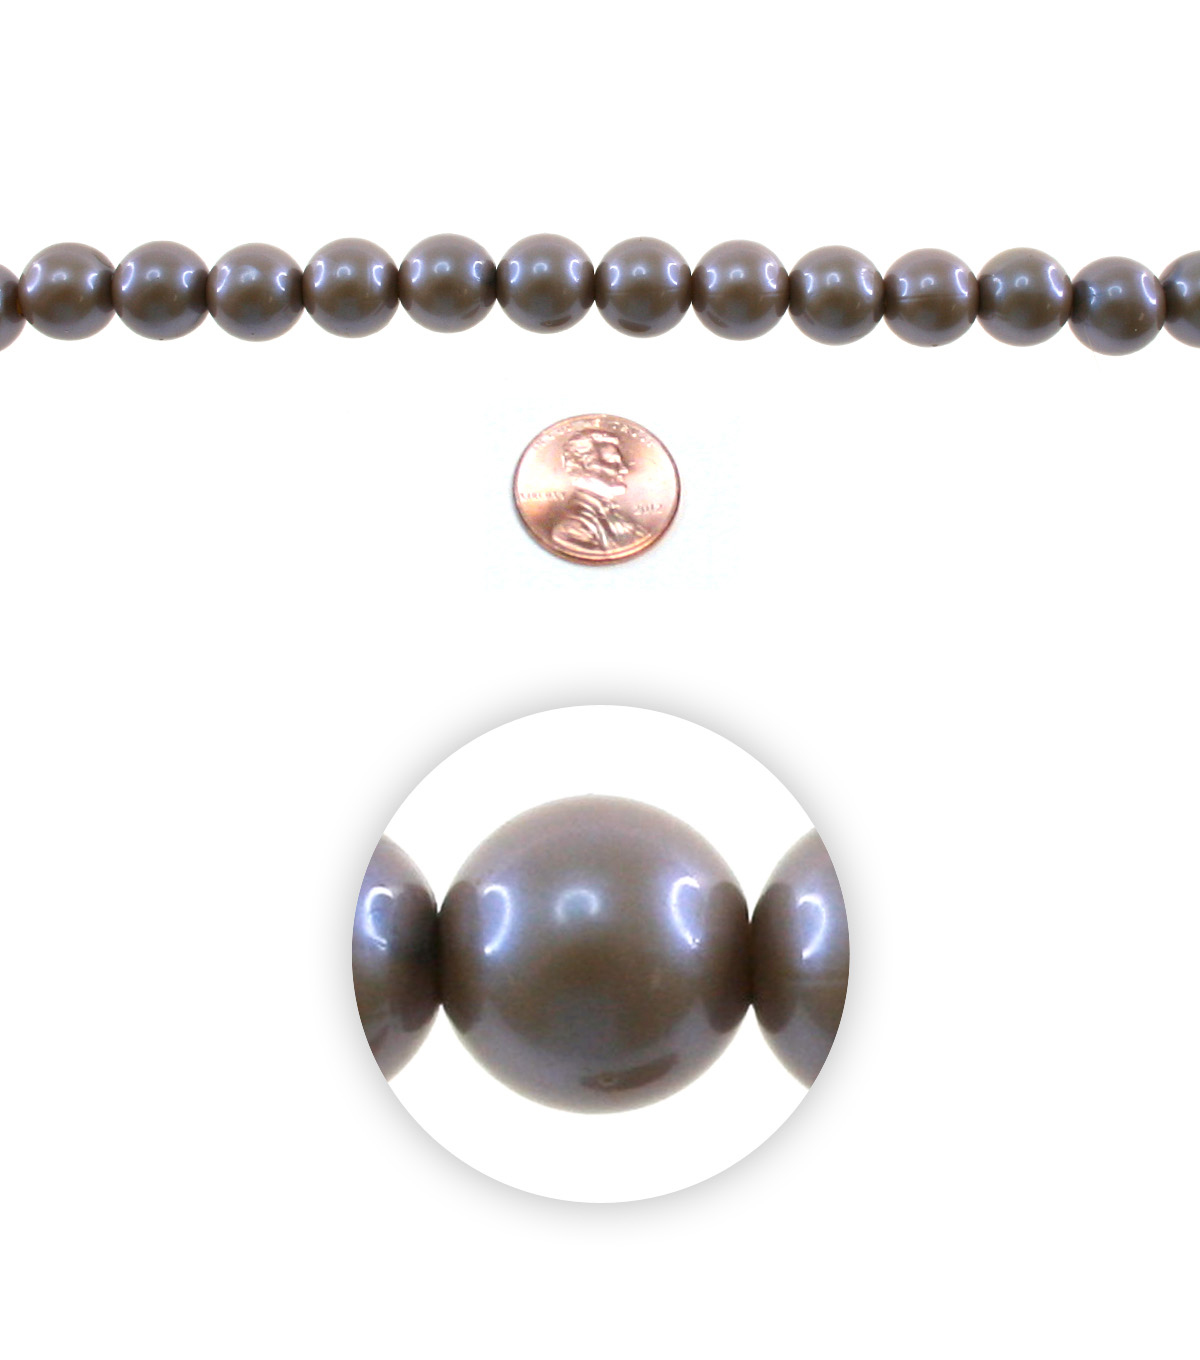 Advantus/Sulyn 7 in Prairie Pearlescent 12mm Bead Strand, Dusted Plum